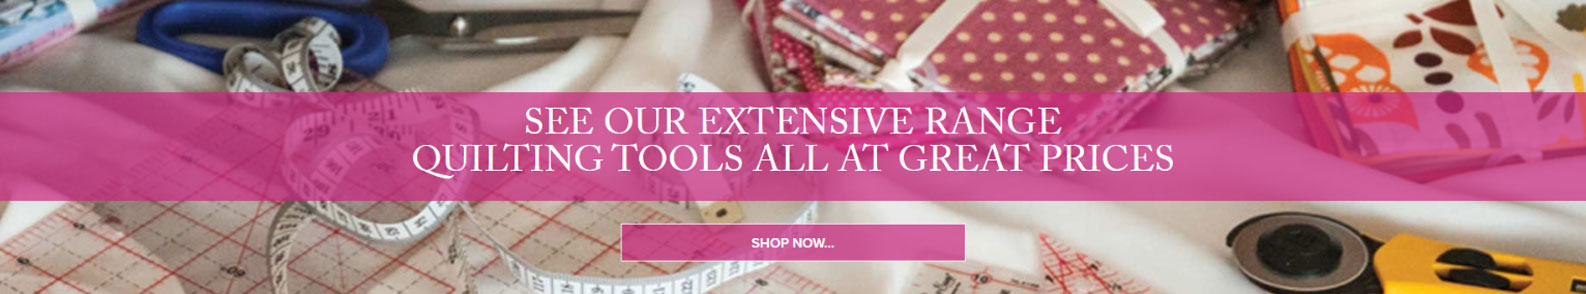 See Our Extensive Range Quilting Tools All At Great Prices